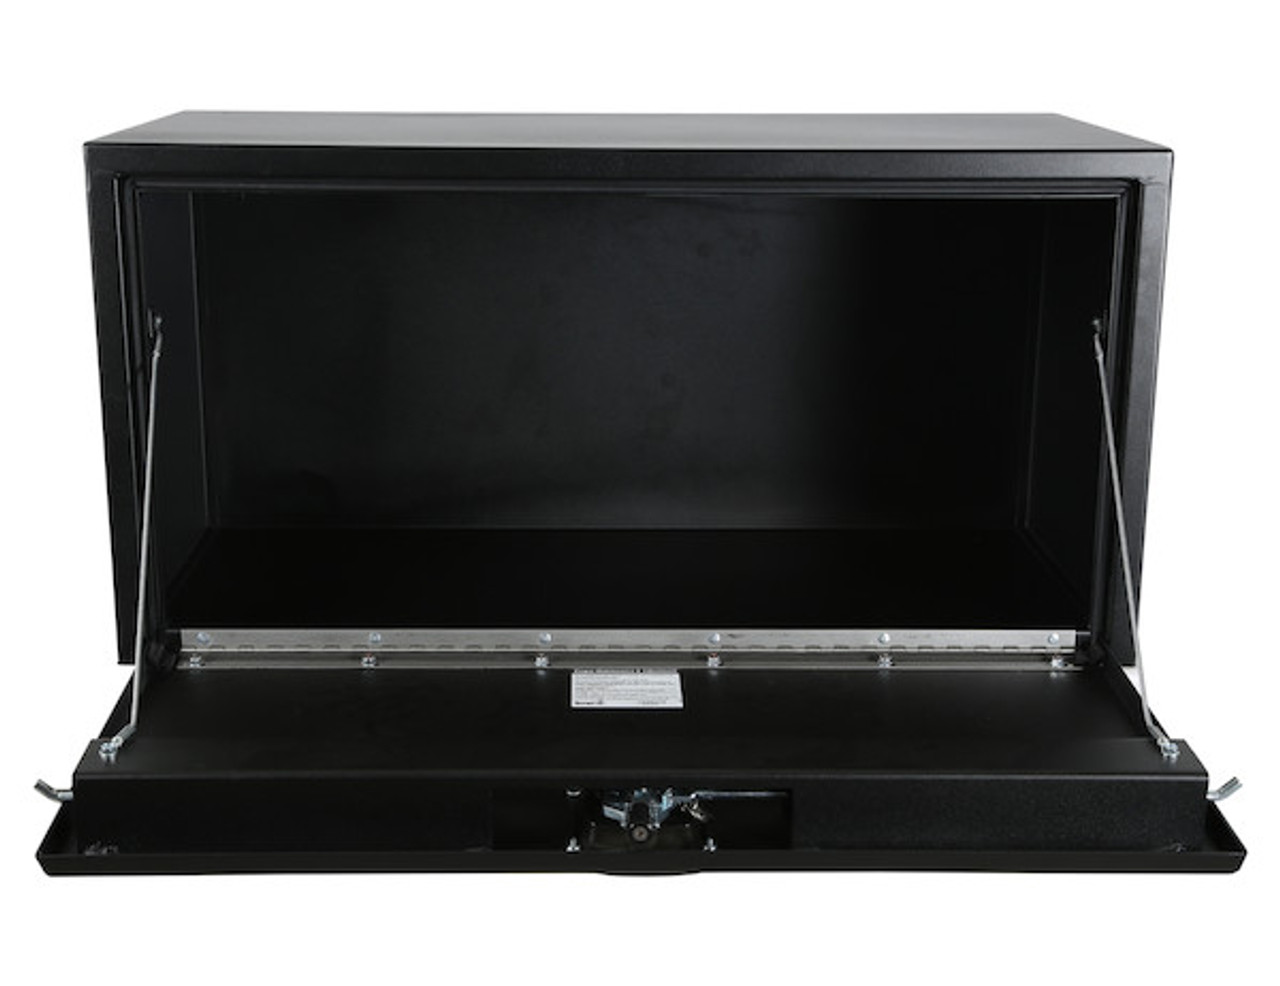 """1732510 BUYERS PRODUCTS TEXTURED MATTE BLACK STEEL UNDERBODY TRUCK TOOLBOX WITH 3-POINT LATCH 18""""Hx18""""Dx48""""W  Picture # 5"""